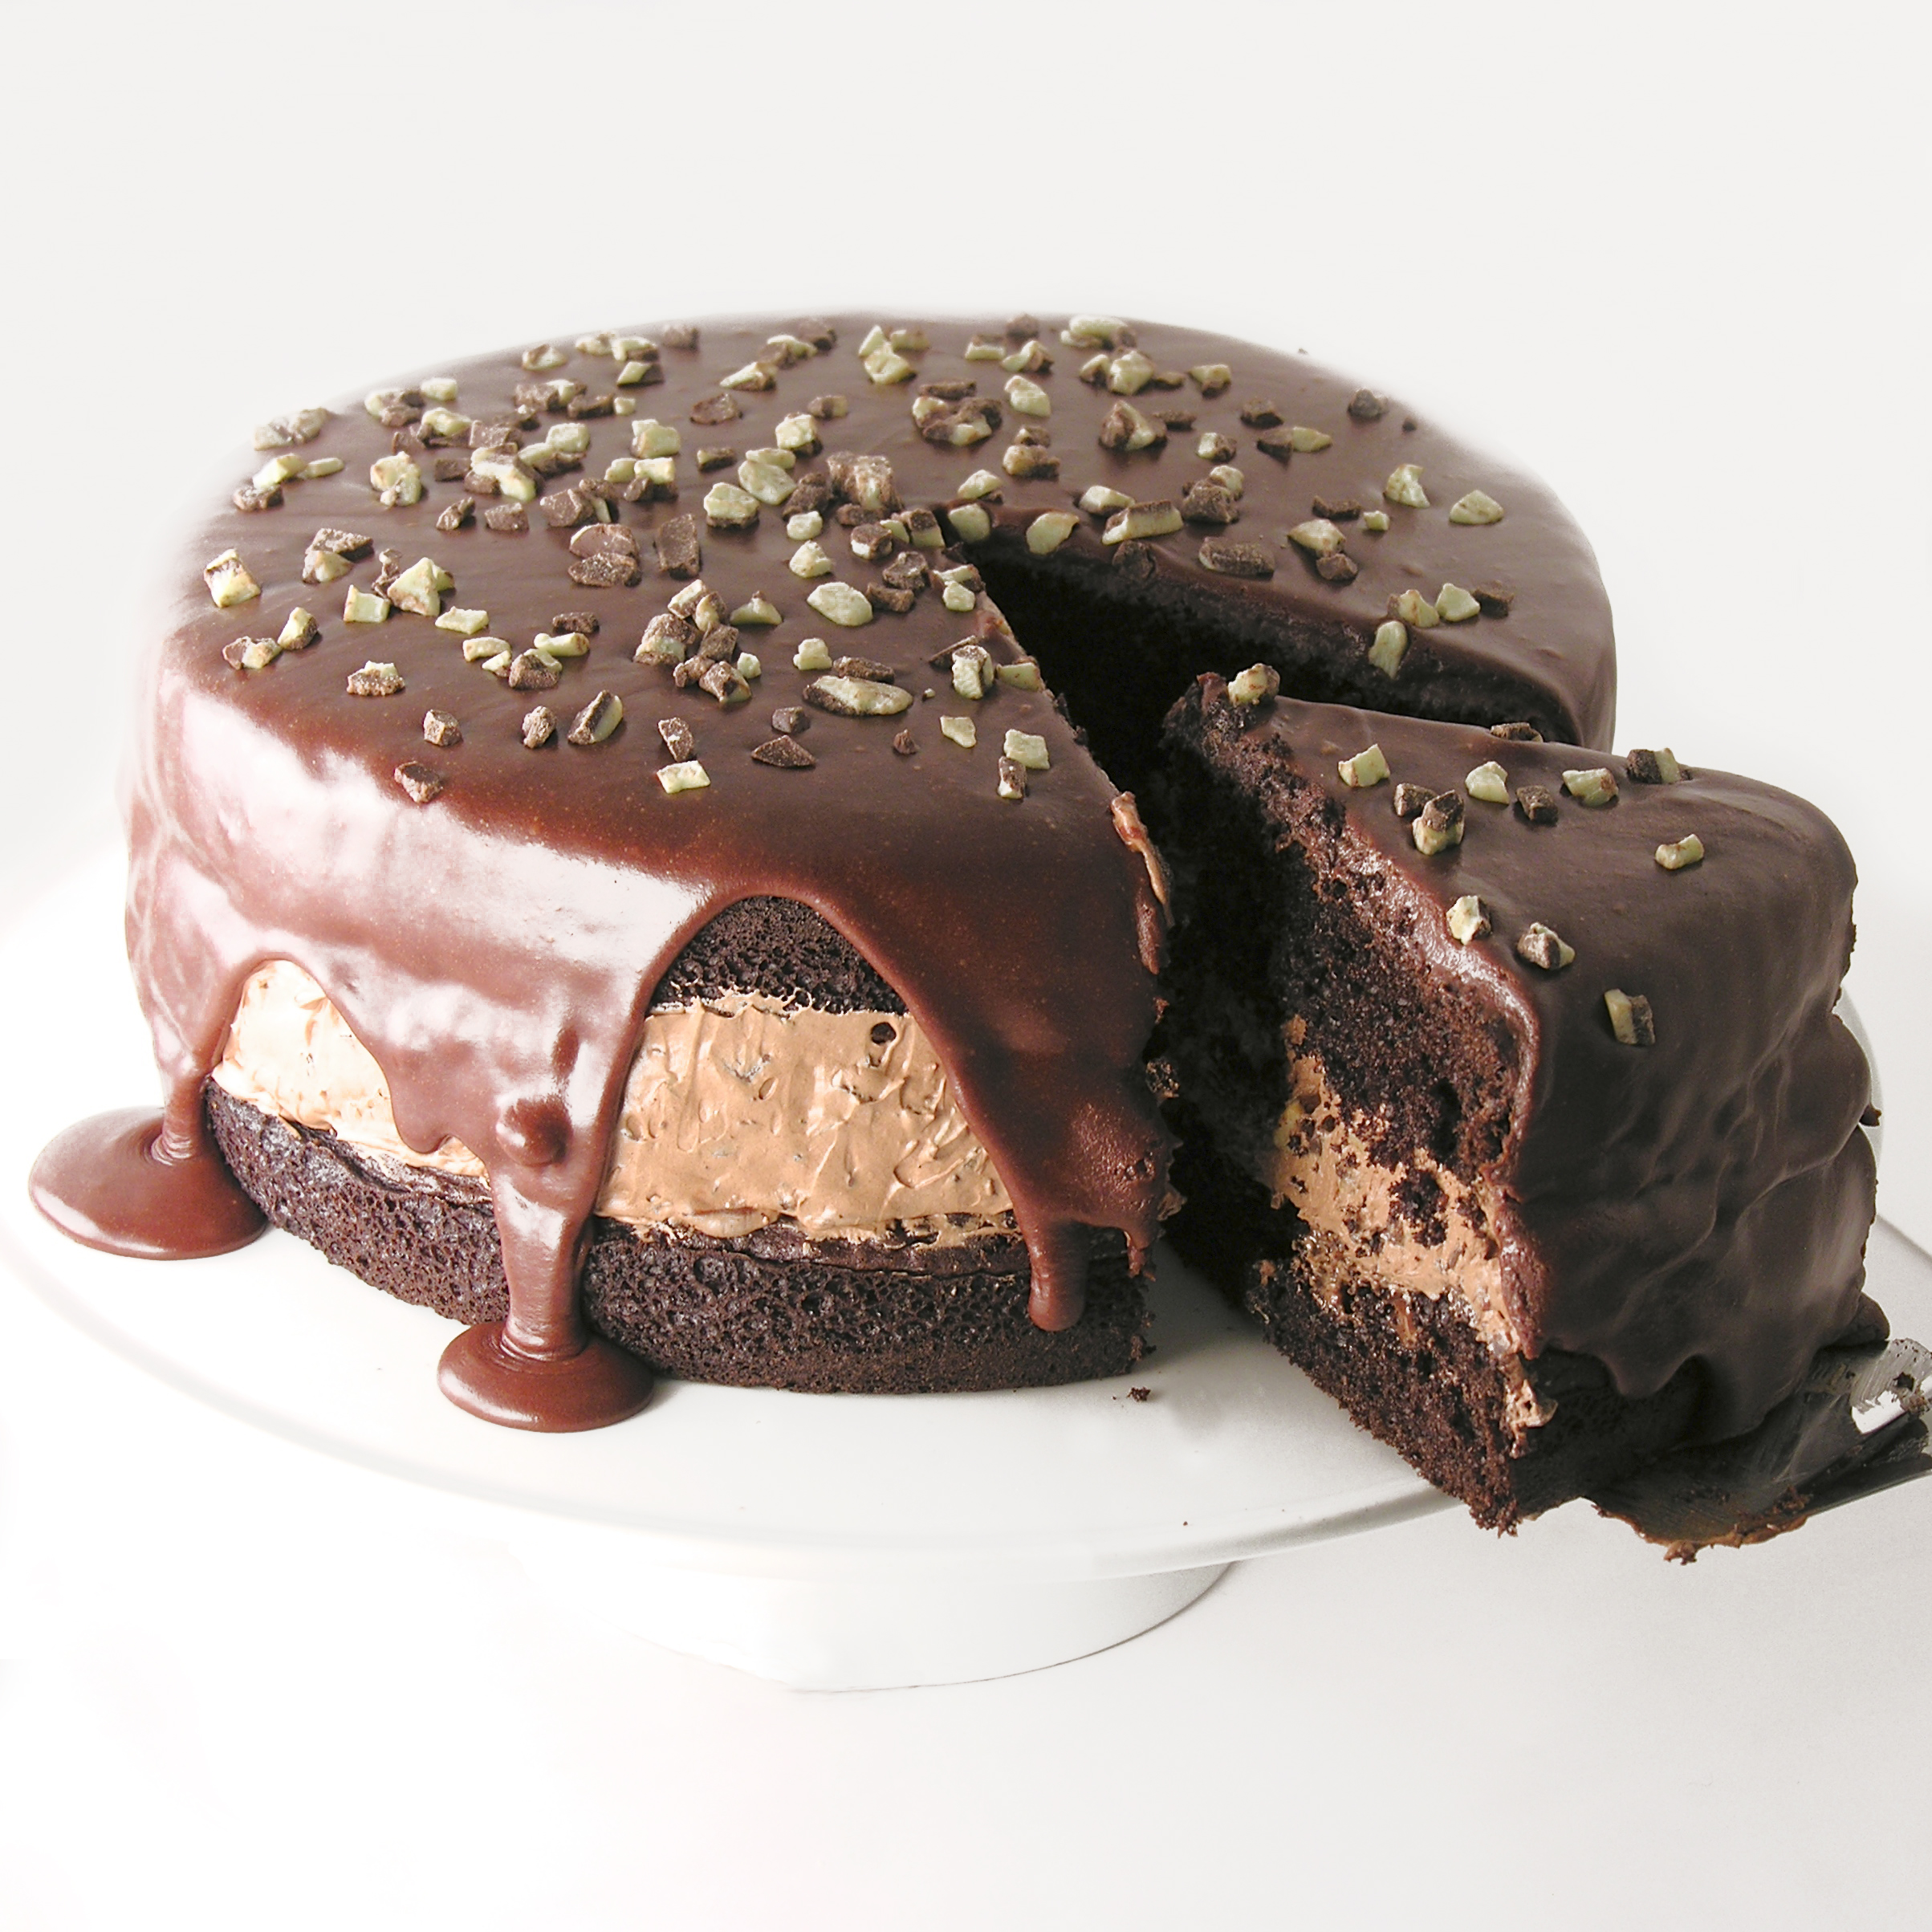 Chocolate Cake With Cholate Mints